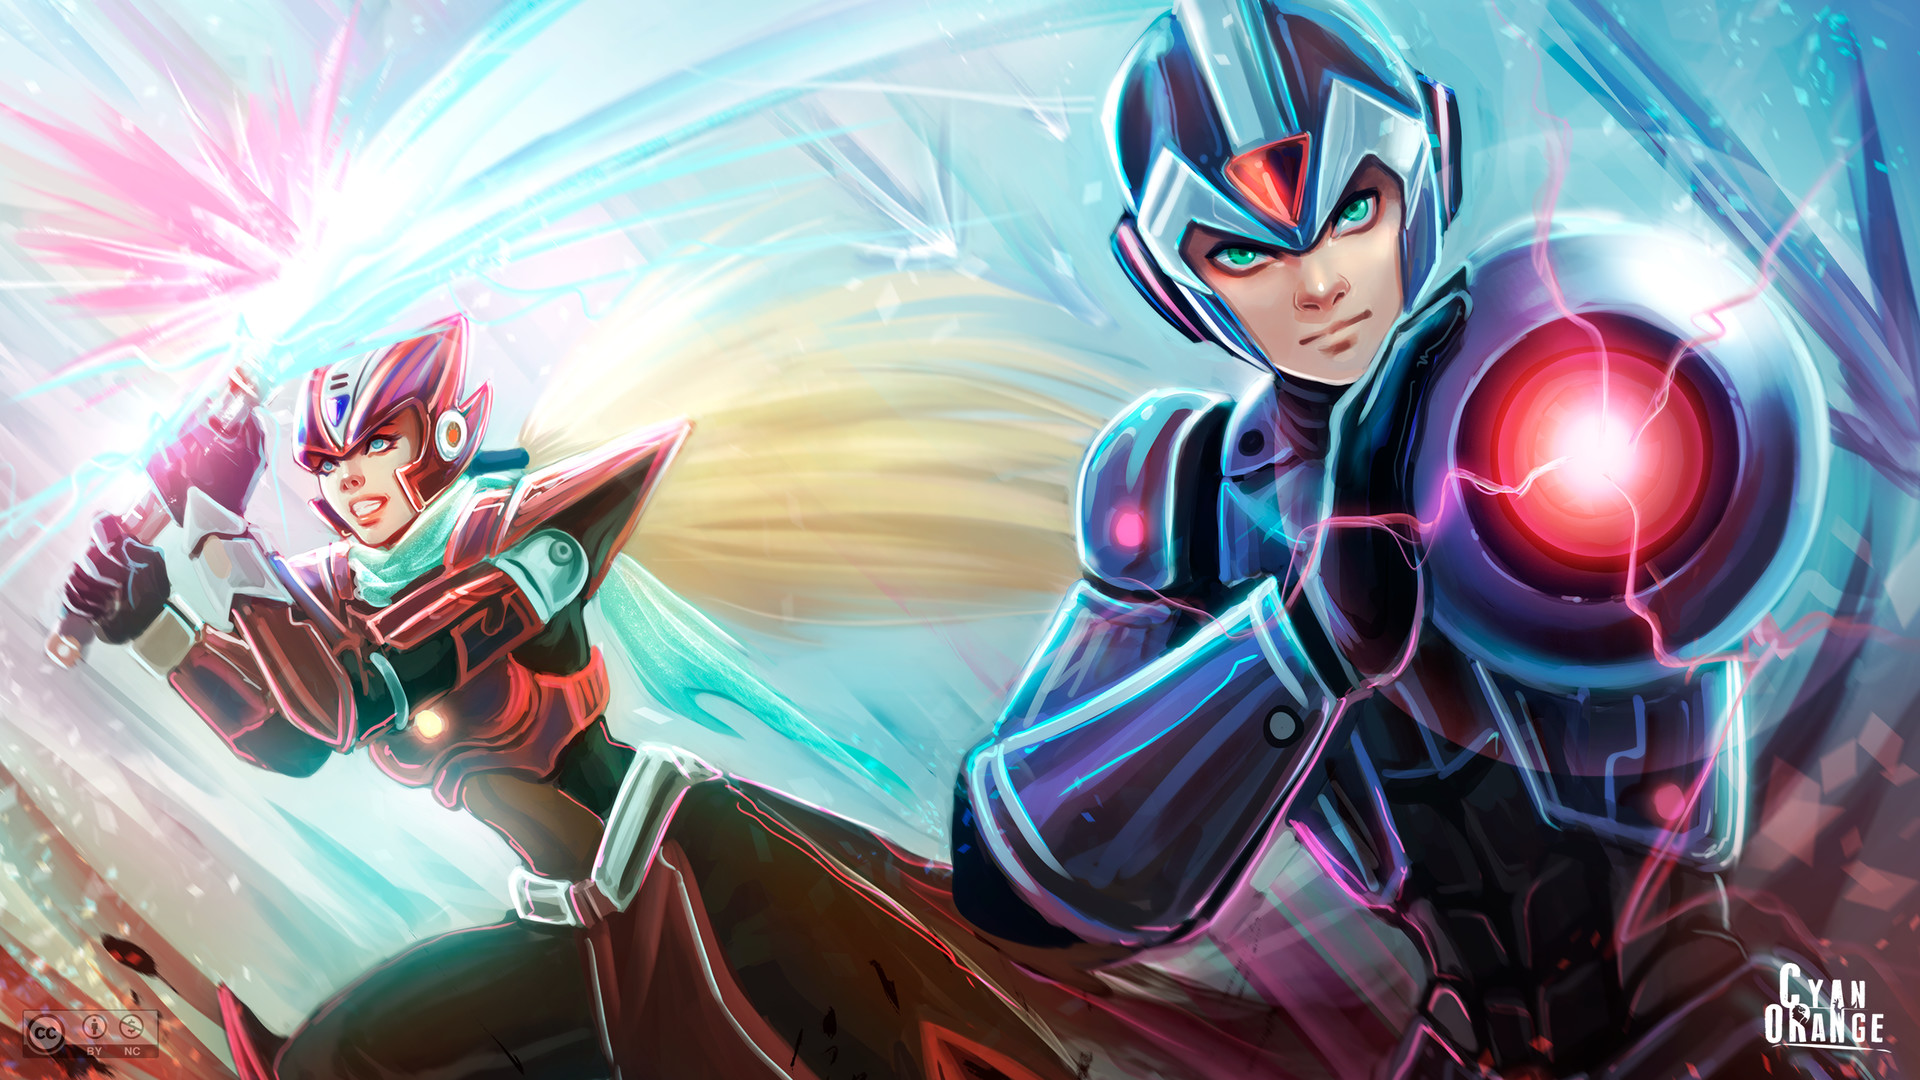 Artstation Megaman Zero Fanart Wallpaper Cyan Orange